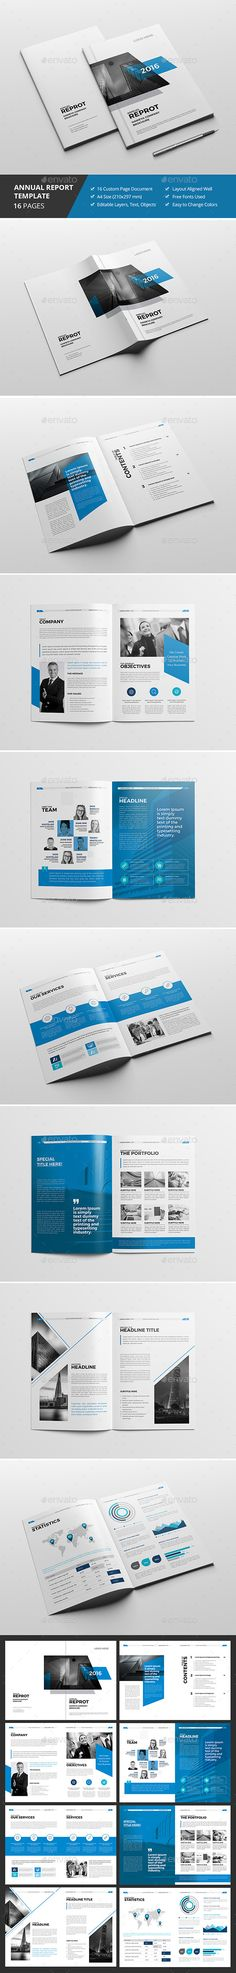 Haweya Annual Report 03  — InDesign Template #infographics #light • Download ➝ https://graphicriver.net/item/haweya-annual-report-03/18010187?ref=pxcr